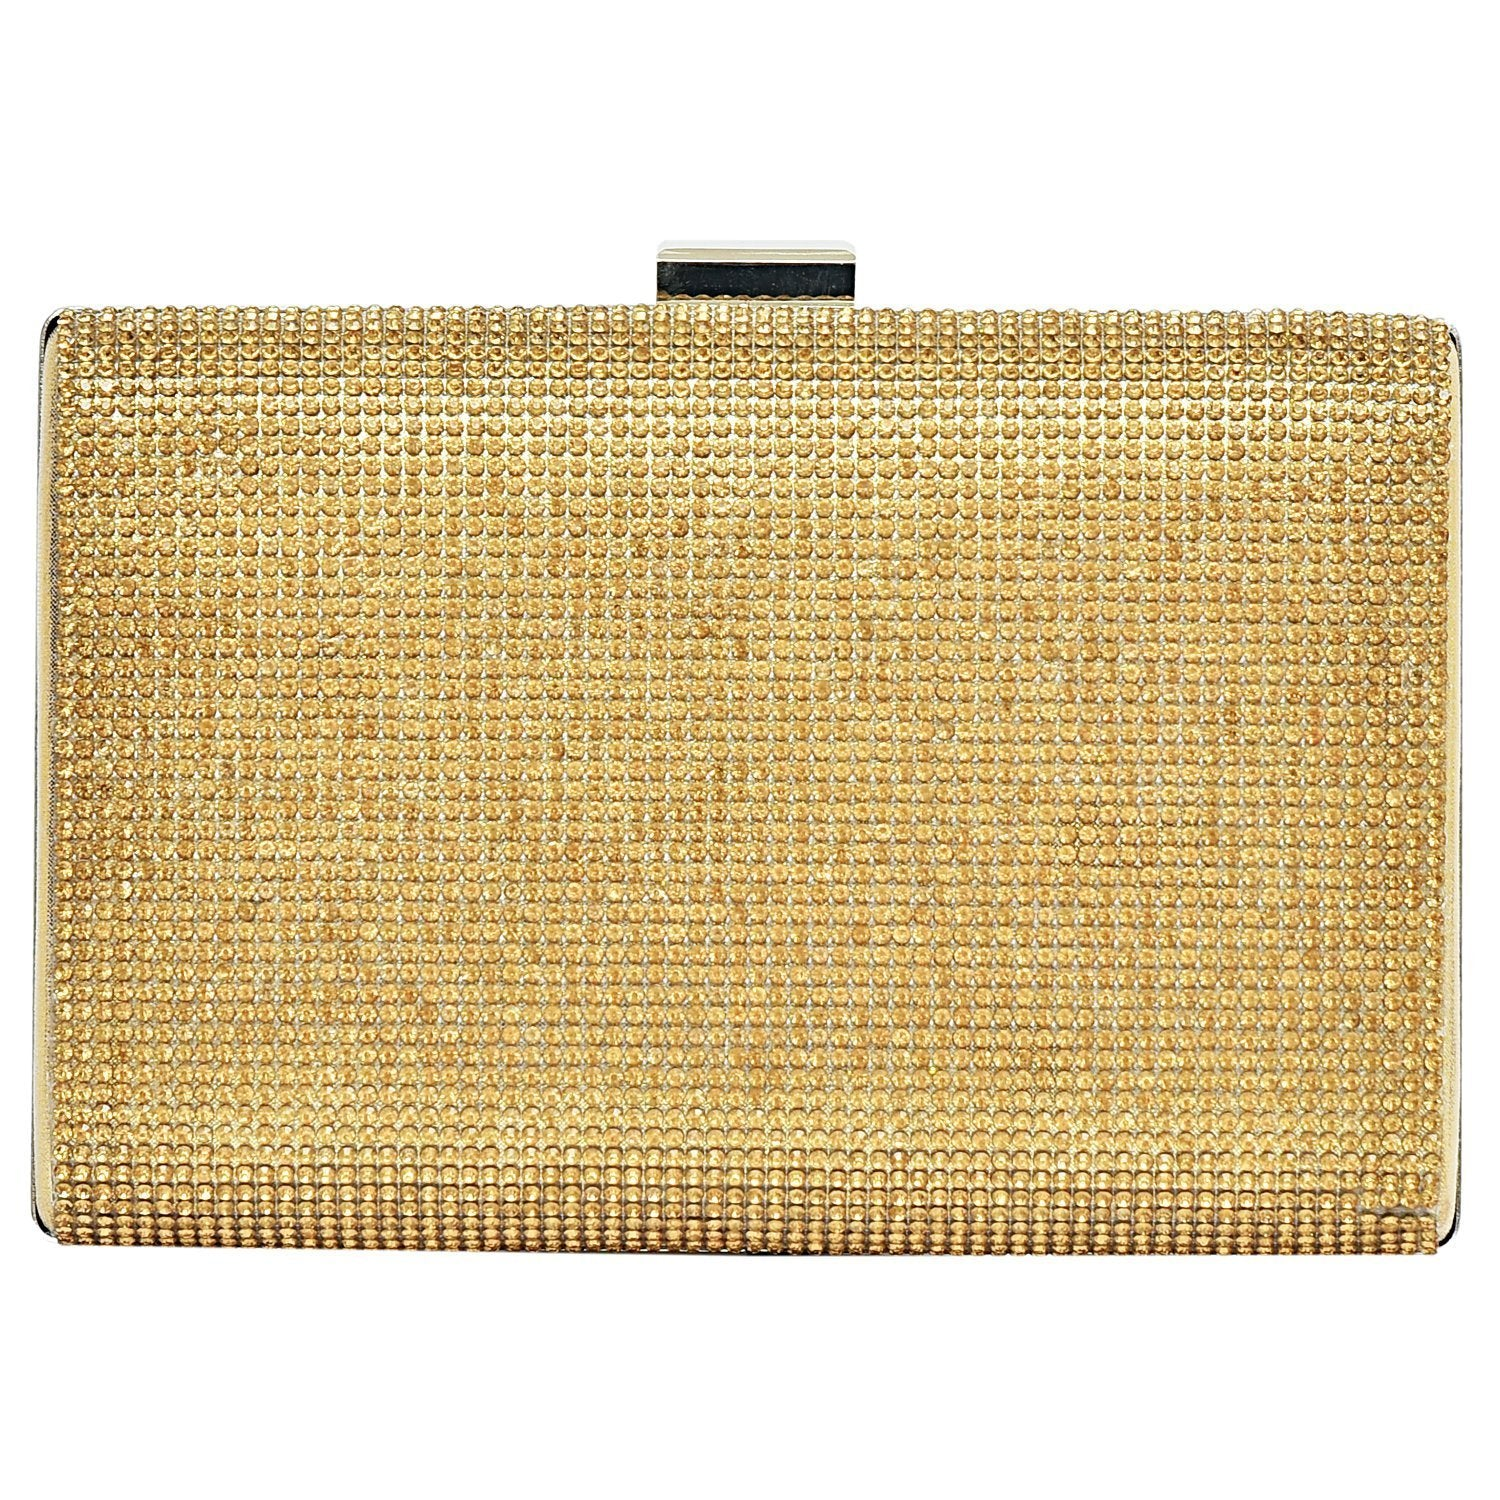 Big Box Party wear Clutch (Gold) - Bagaholics Gift